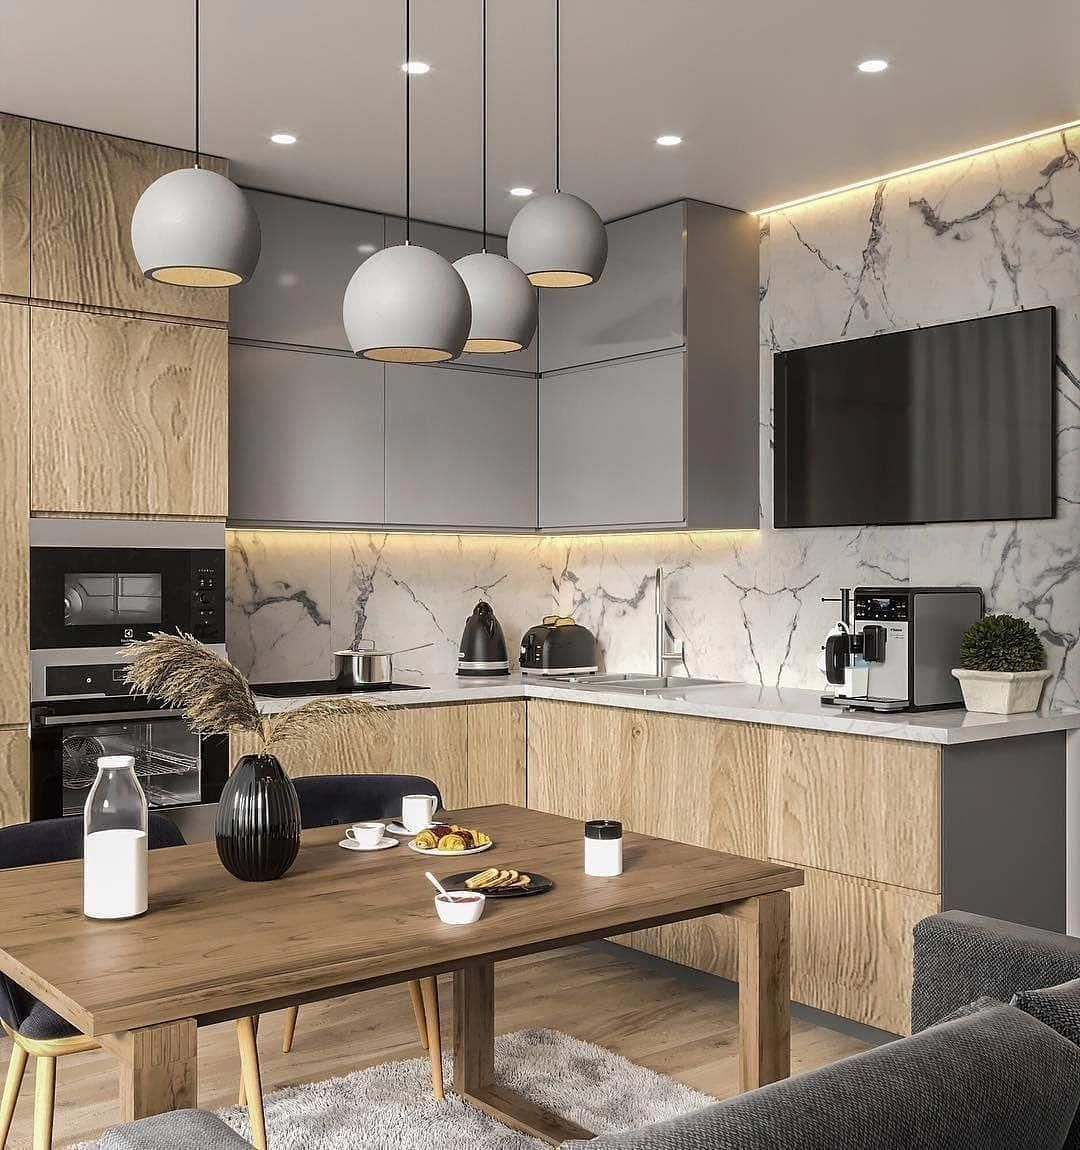 Unbeatable Two Tone Kitchen Cabinets Wood And White Kitchencabinets Twotone Kitch Contemporary Kitchen Cabinets Modern Kitchen Interiors Kitchen Room Design